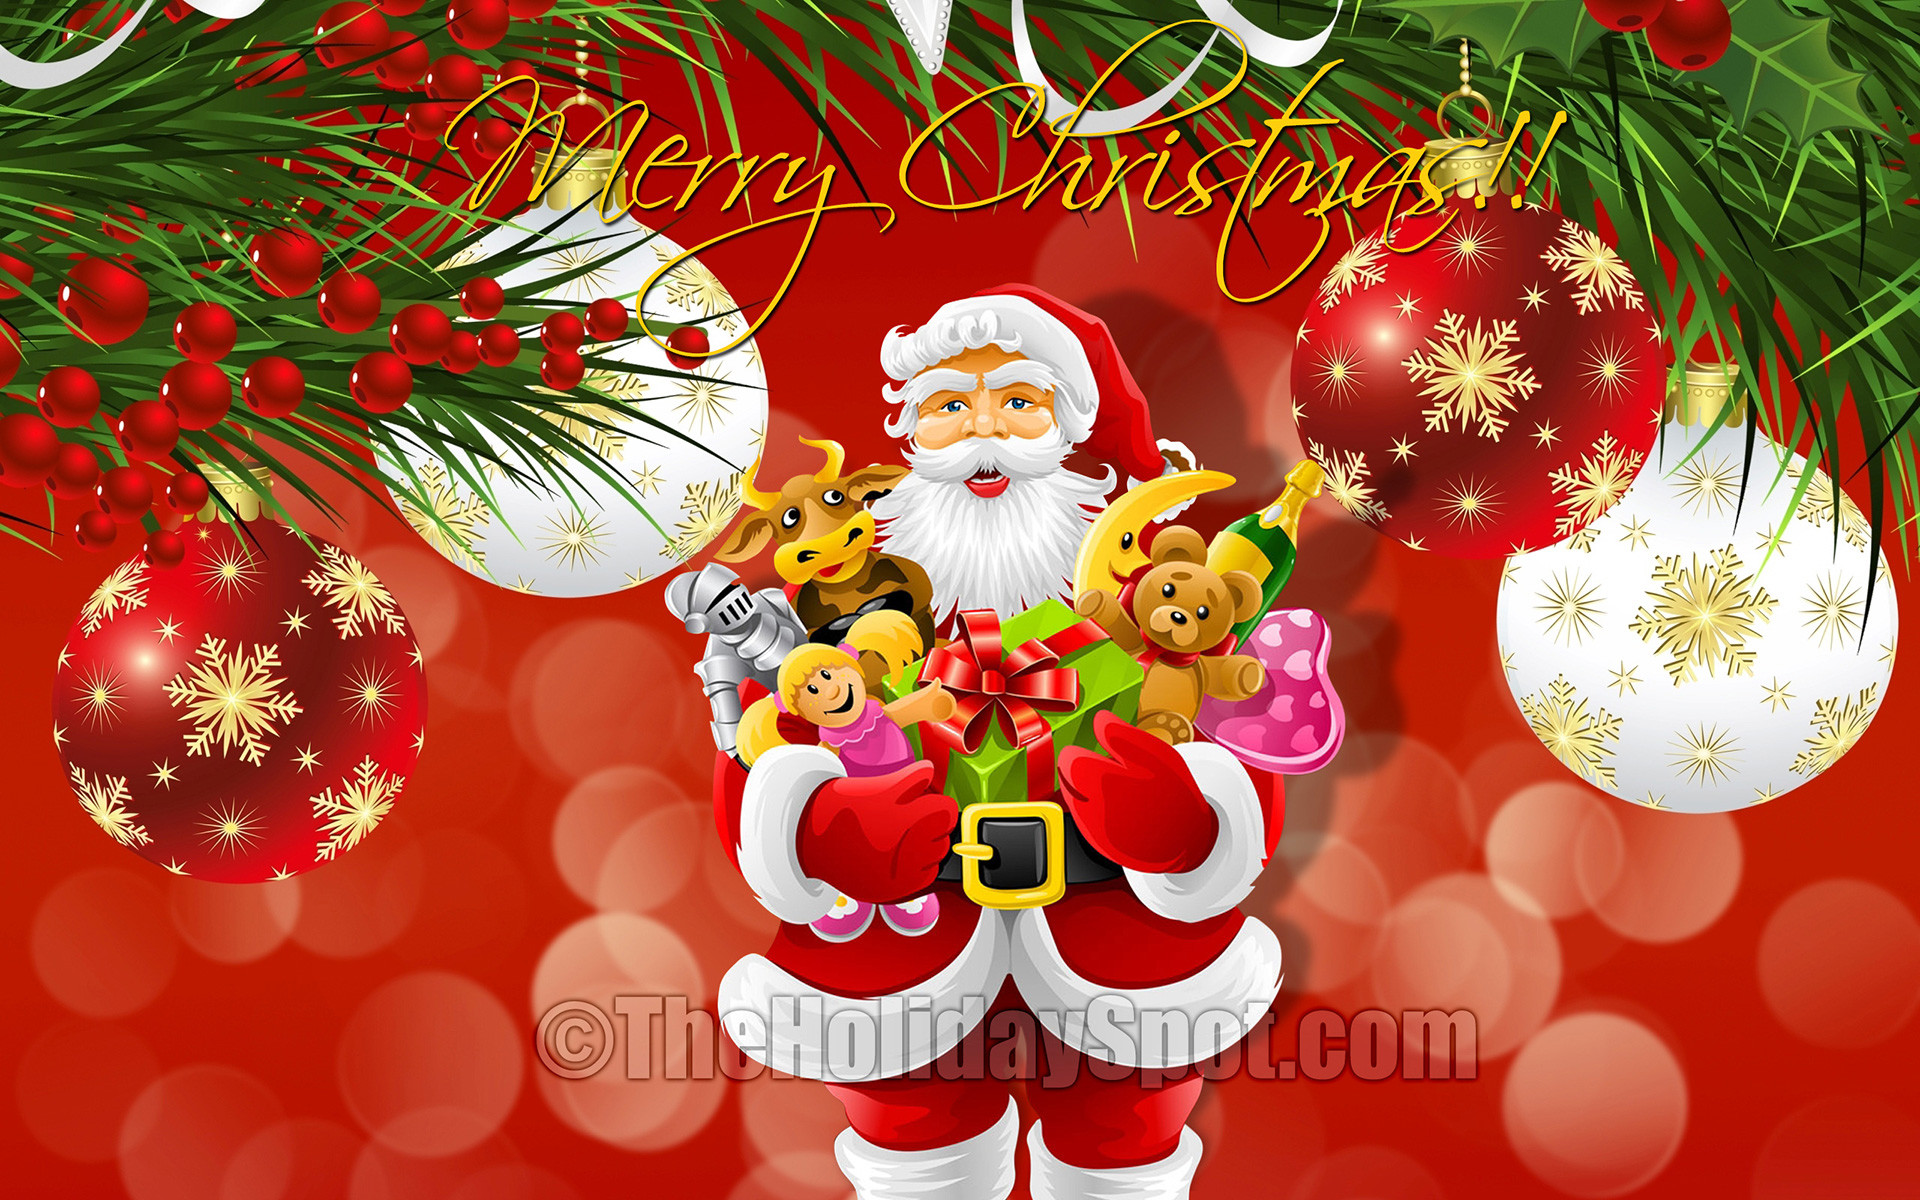 Res: 1920x1200, Santa with Toys in Christmas Wallpaper